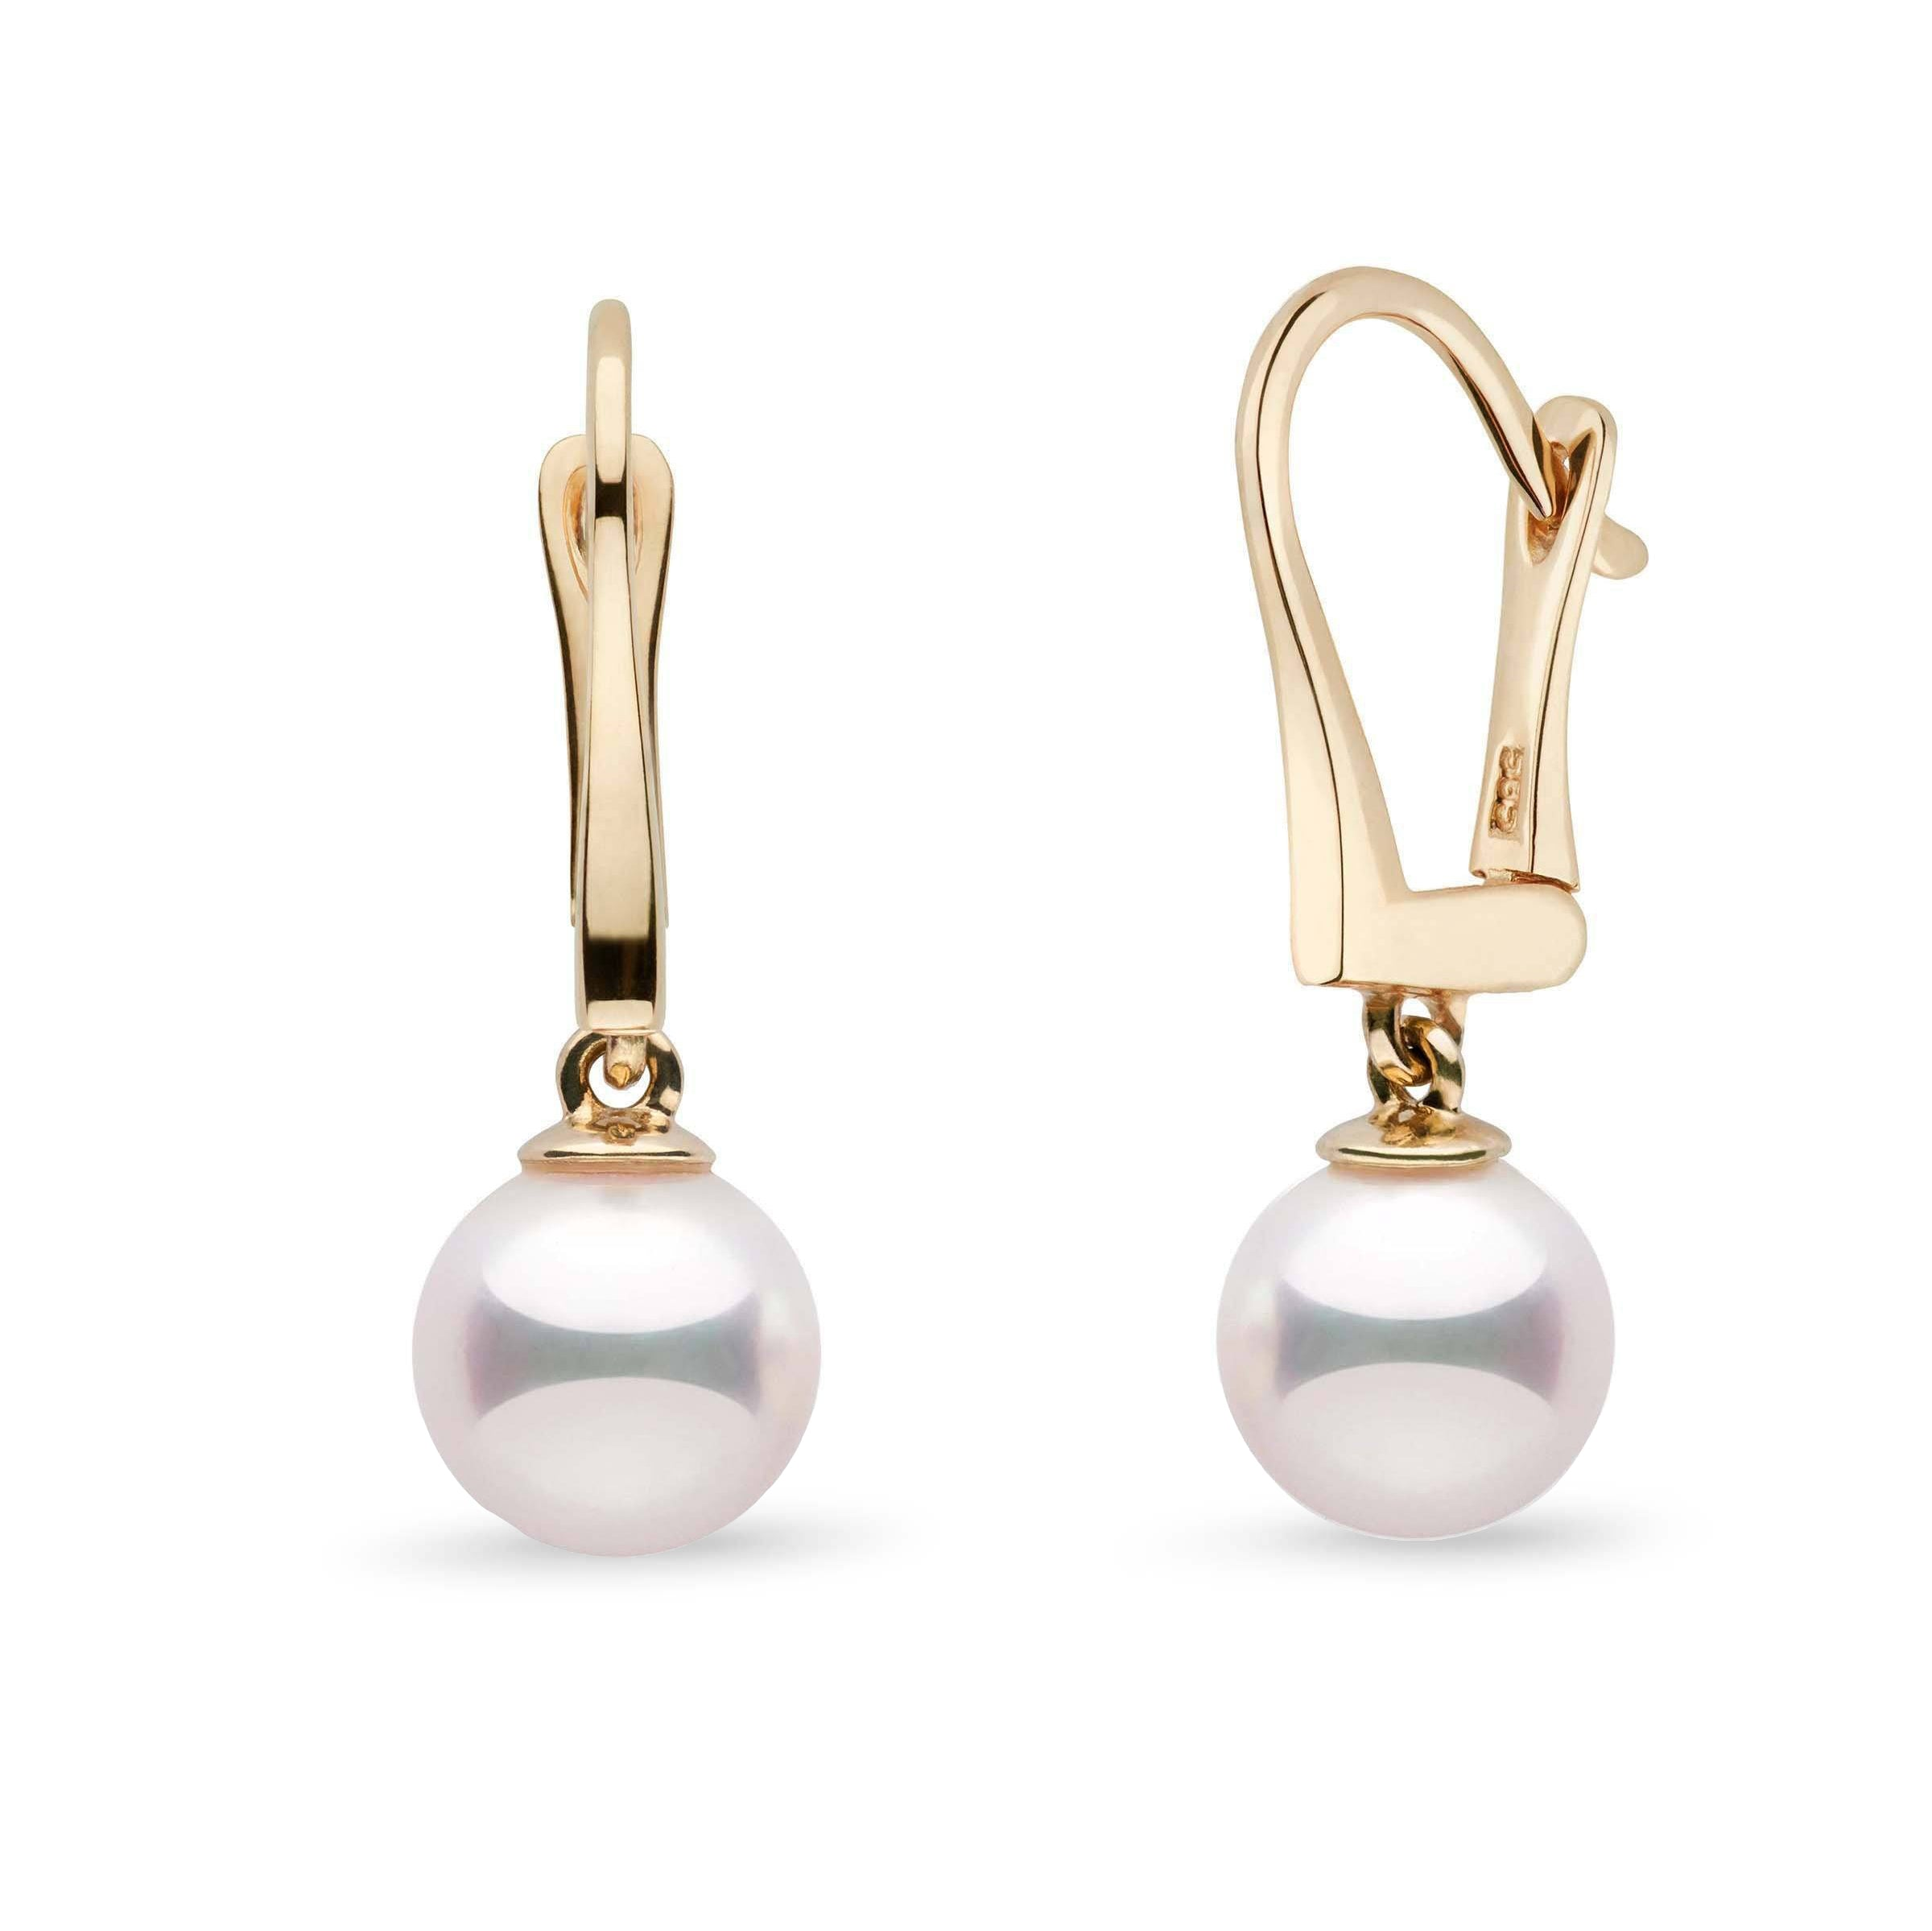 Classic Collection 8.0-8.5 mm White Hanadama Pearl Dangle Earrings